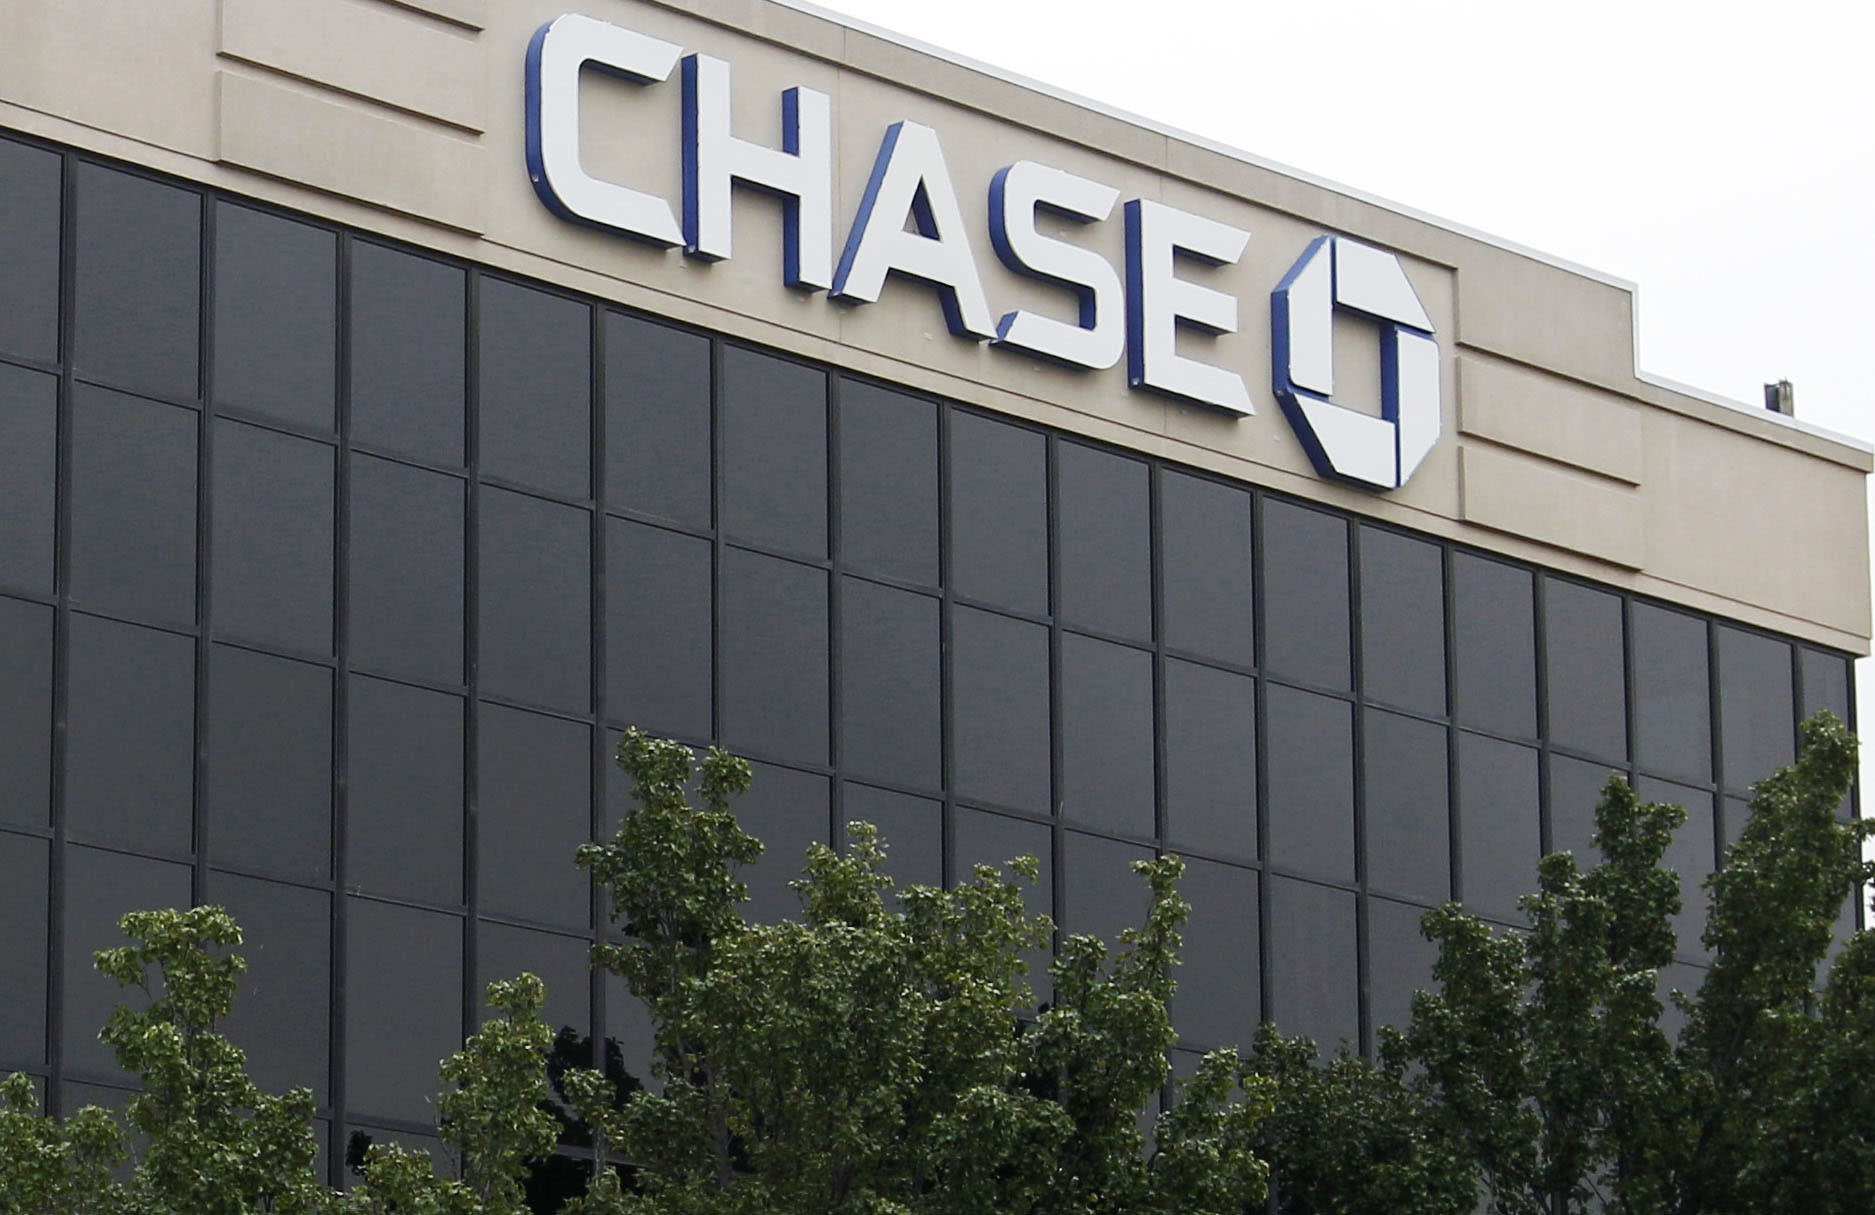 This Thursday, Oct. 11, 2012, photo shows a JPMorgan Chase branch office in Oklahoma City. JPMorgan Chase, the country's biggest bank by assets, reported a record quarterly profit Friday, Oct. 12, 2012. The bank said it made $5.3 billion in earnings for common shareholders, a widely used measurement, from July through September, up 36 percent from the same period a year ago. (AP Photo/Sue Ogrocki)